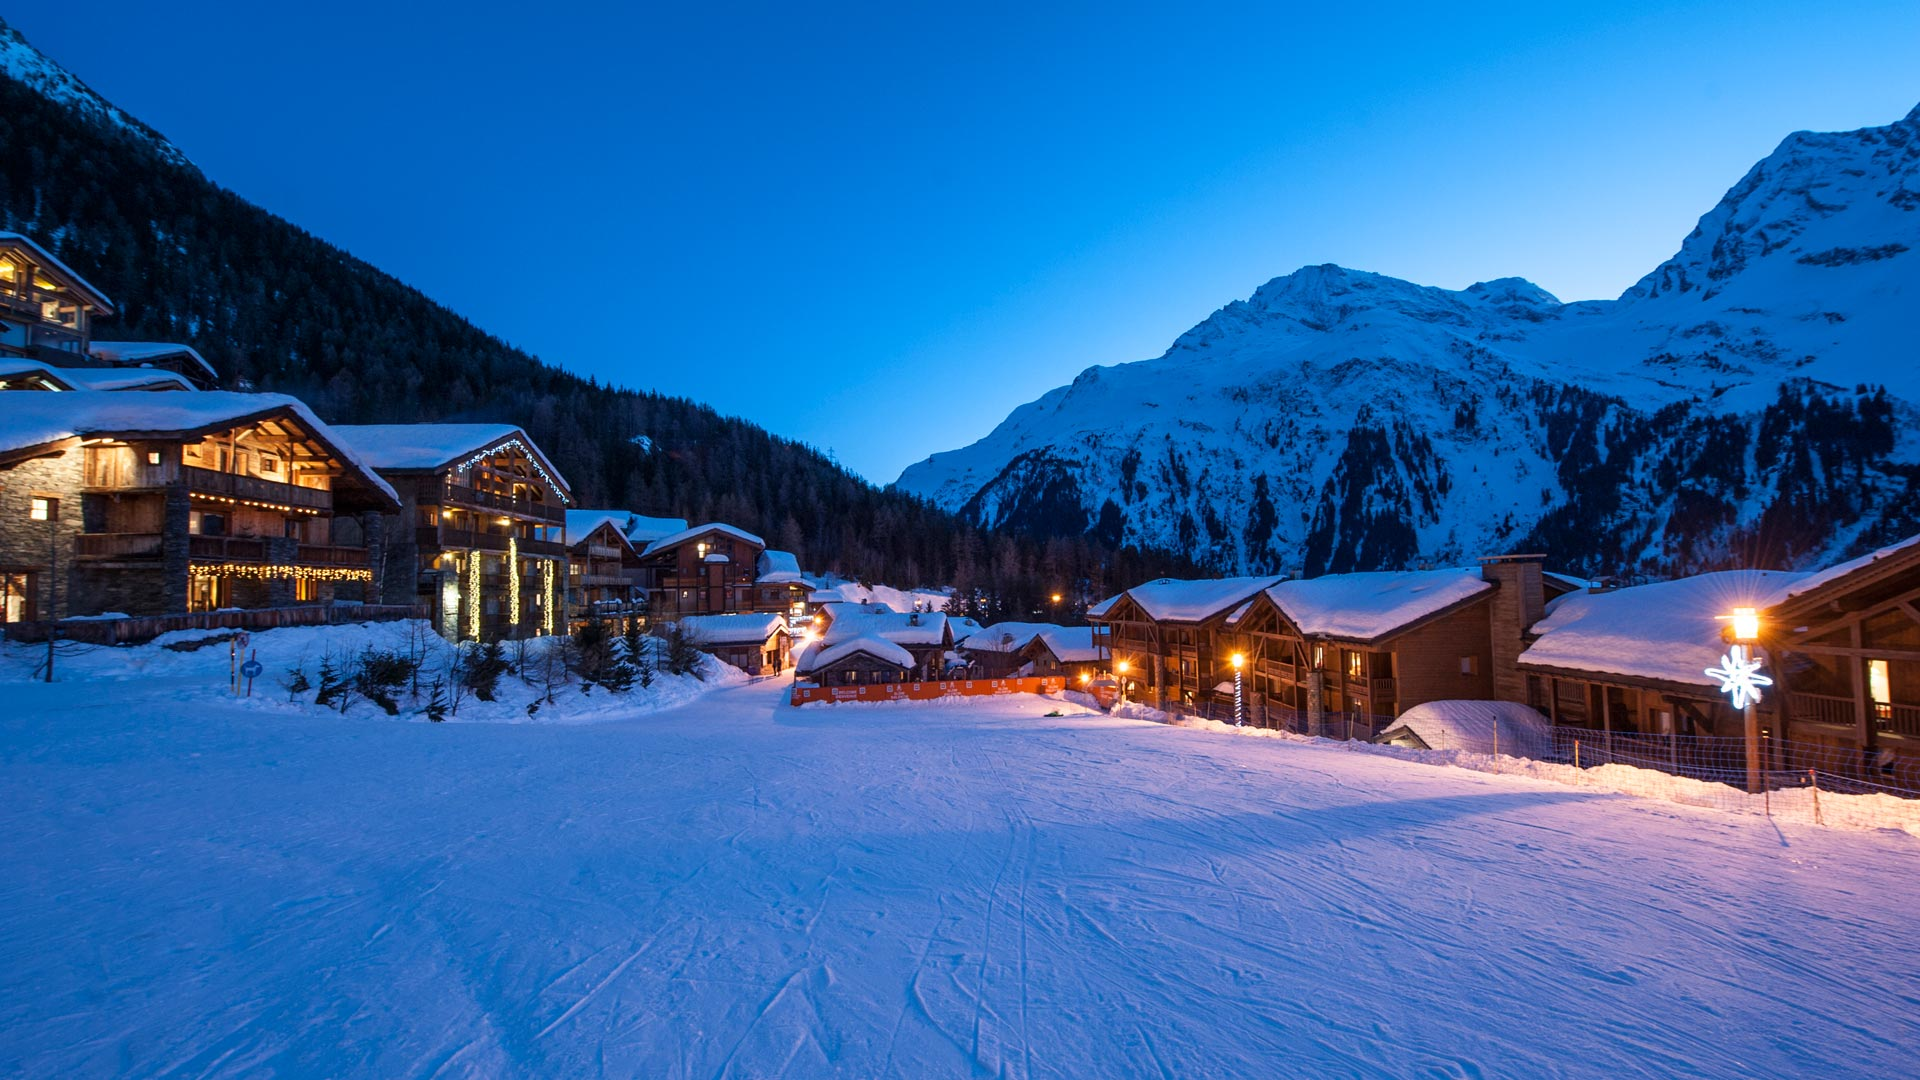 Sainte Foy in twilight